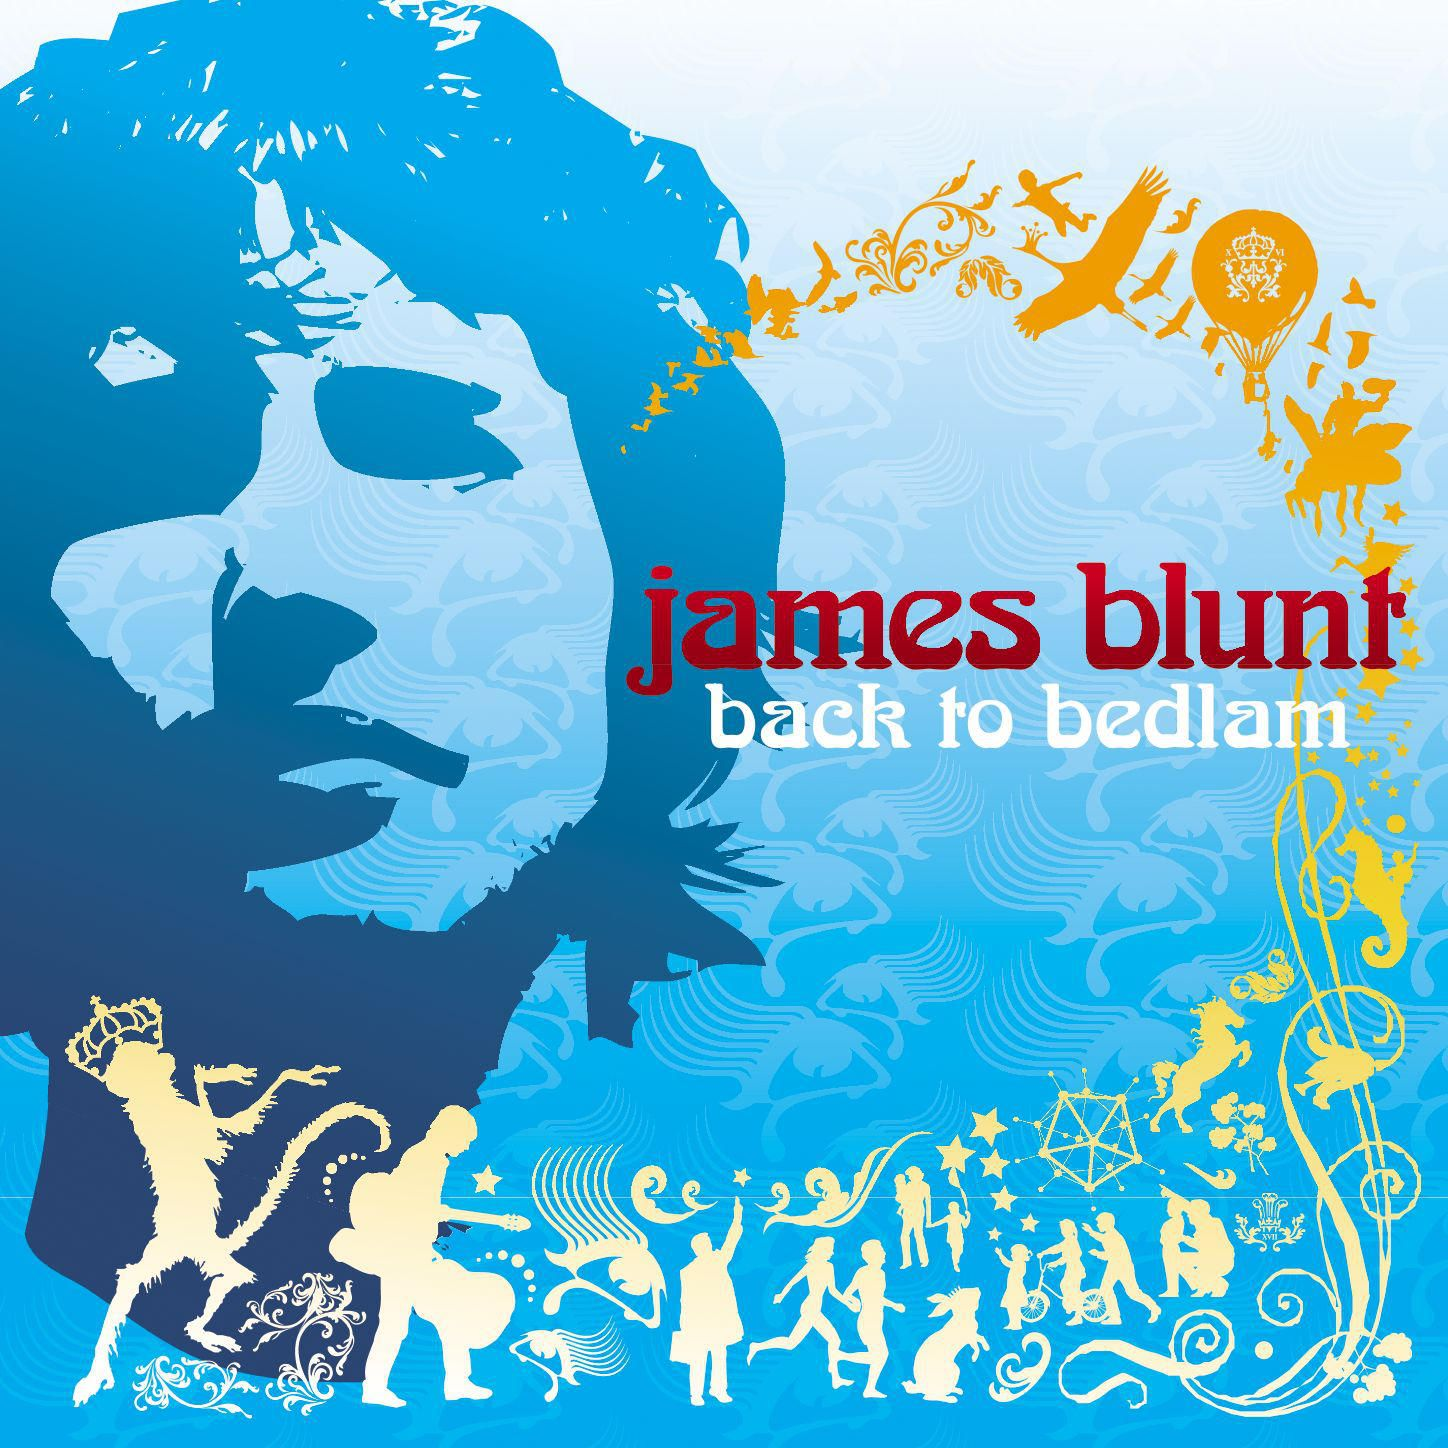 James Blunt - Back To Bedlam album cover